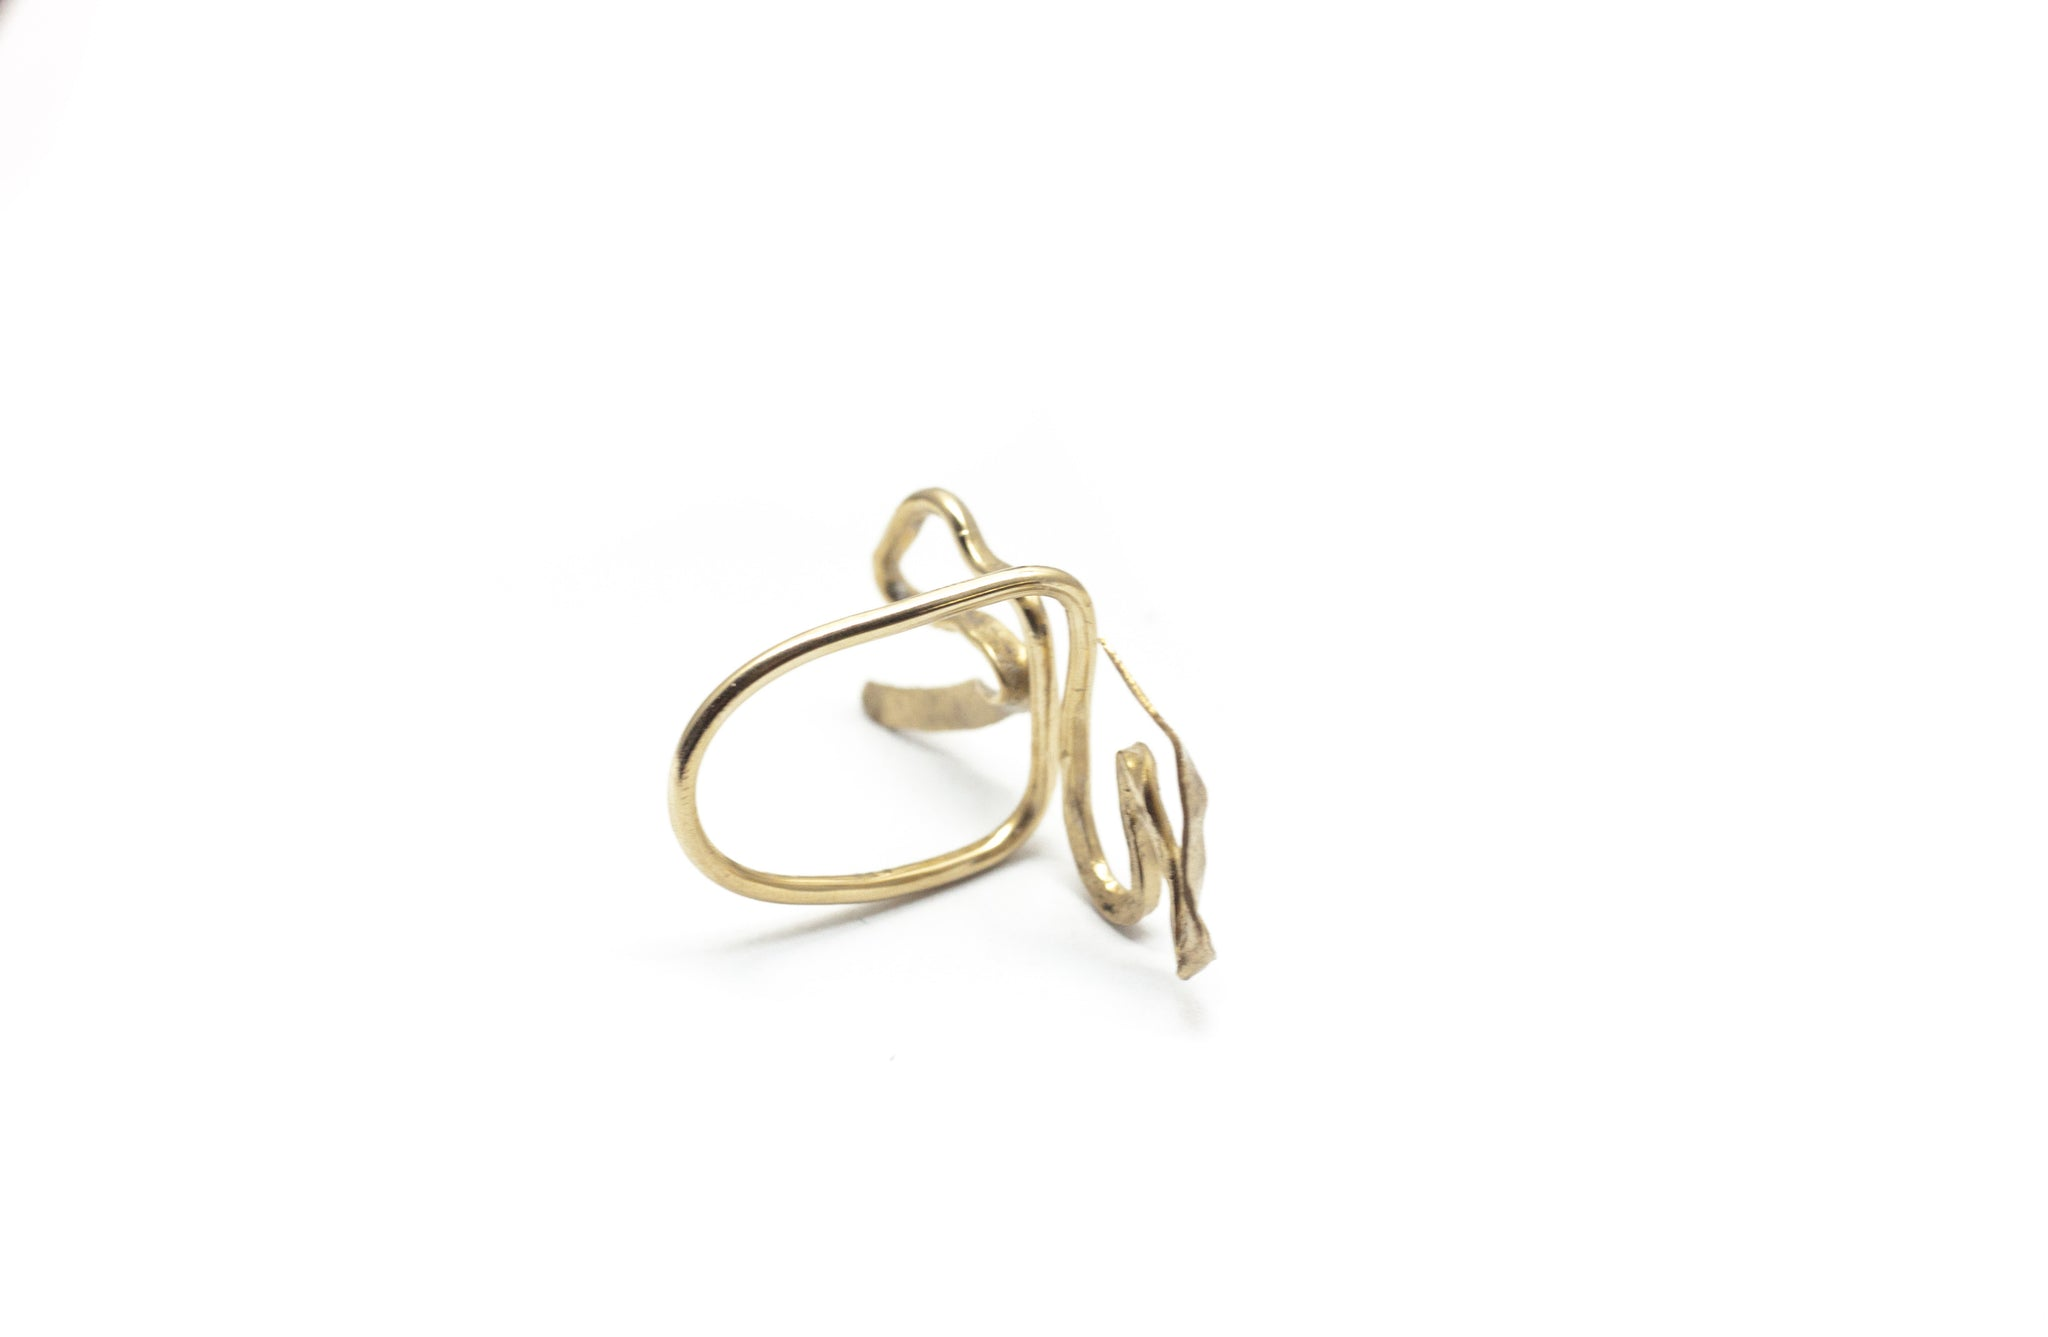 14k gold filled ring